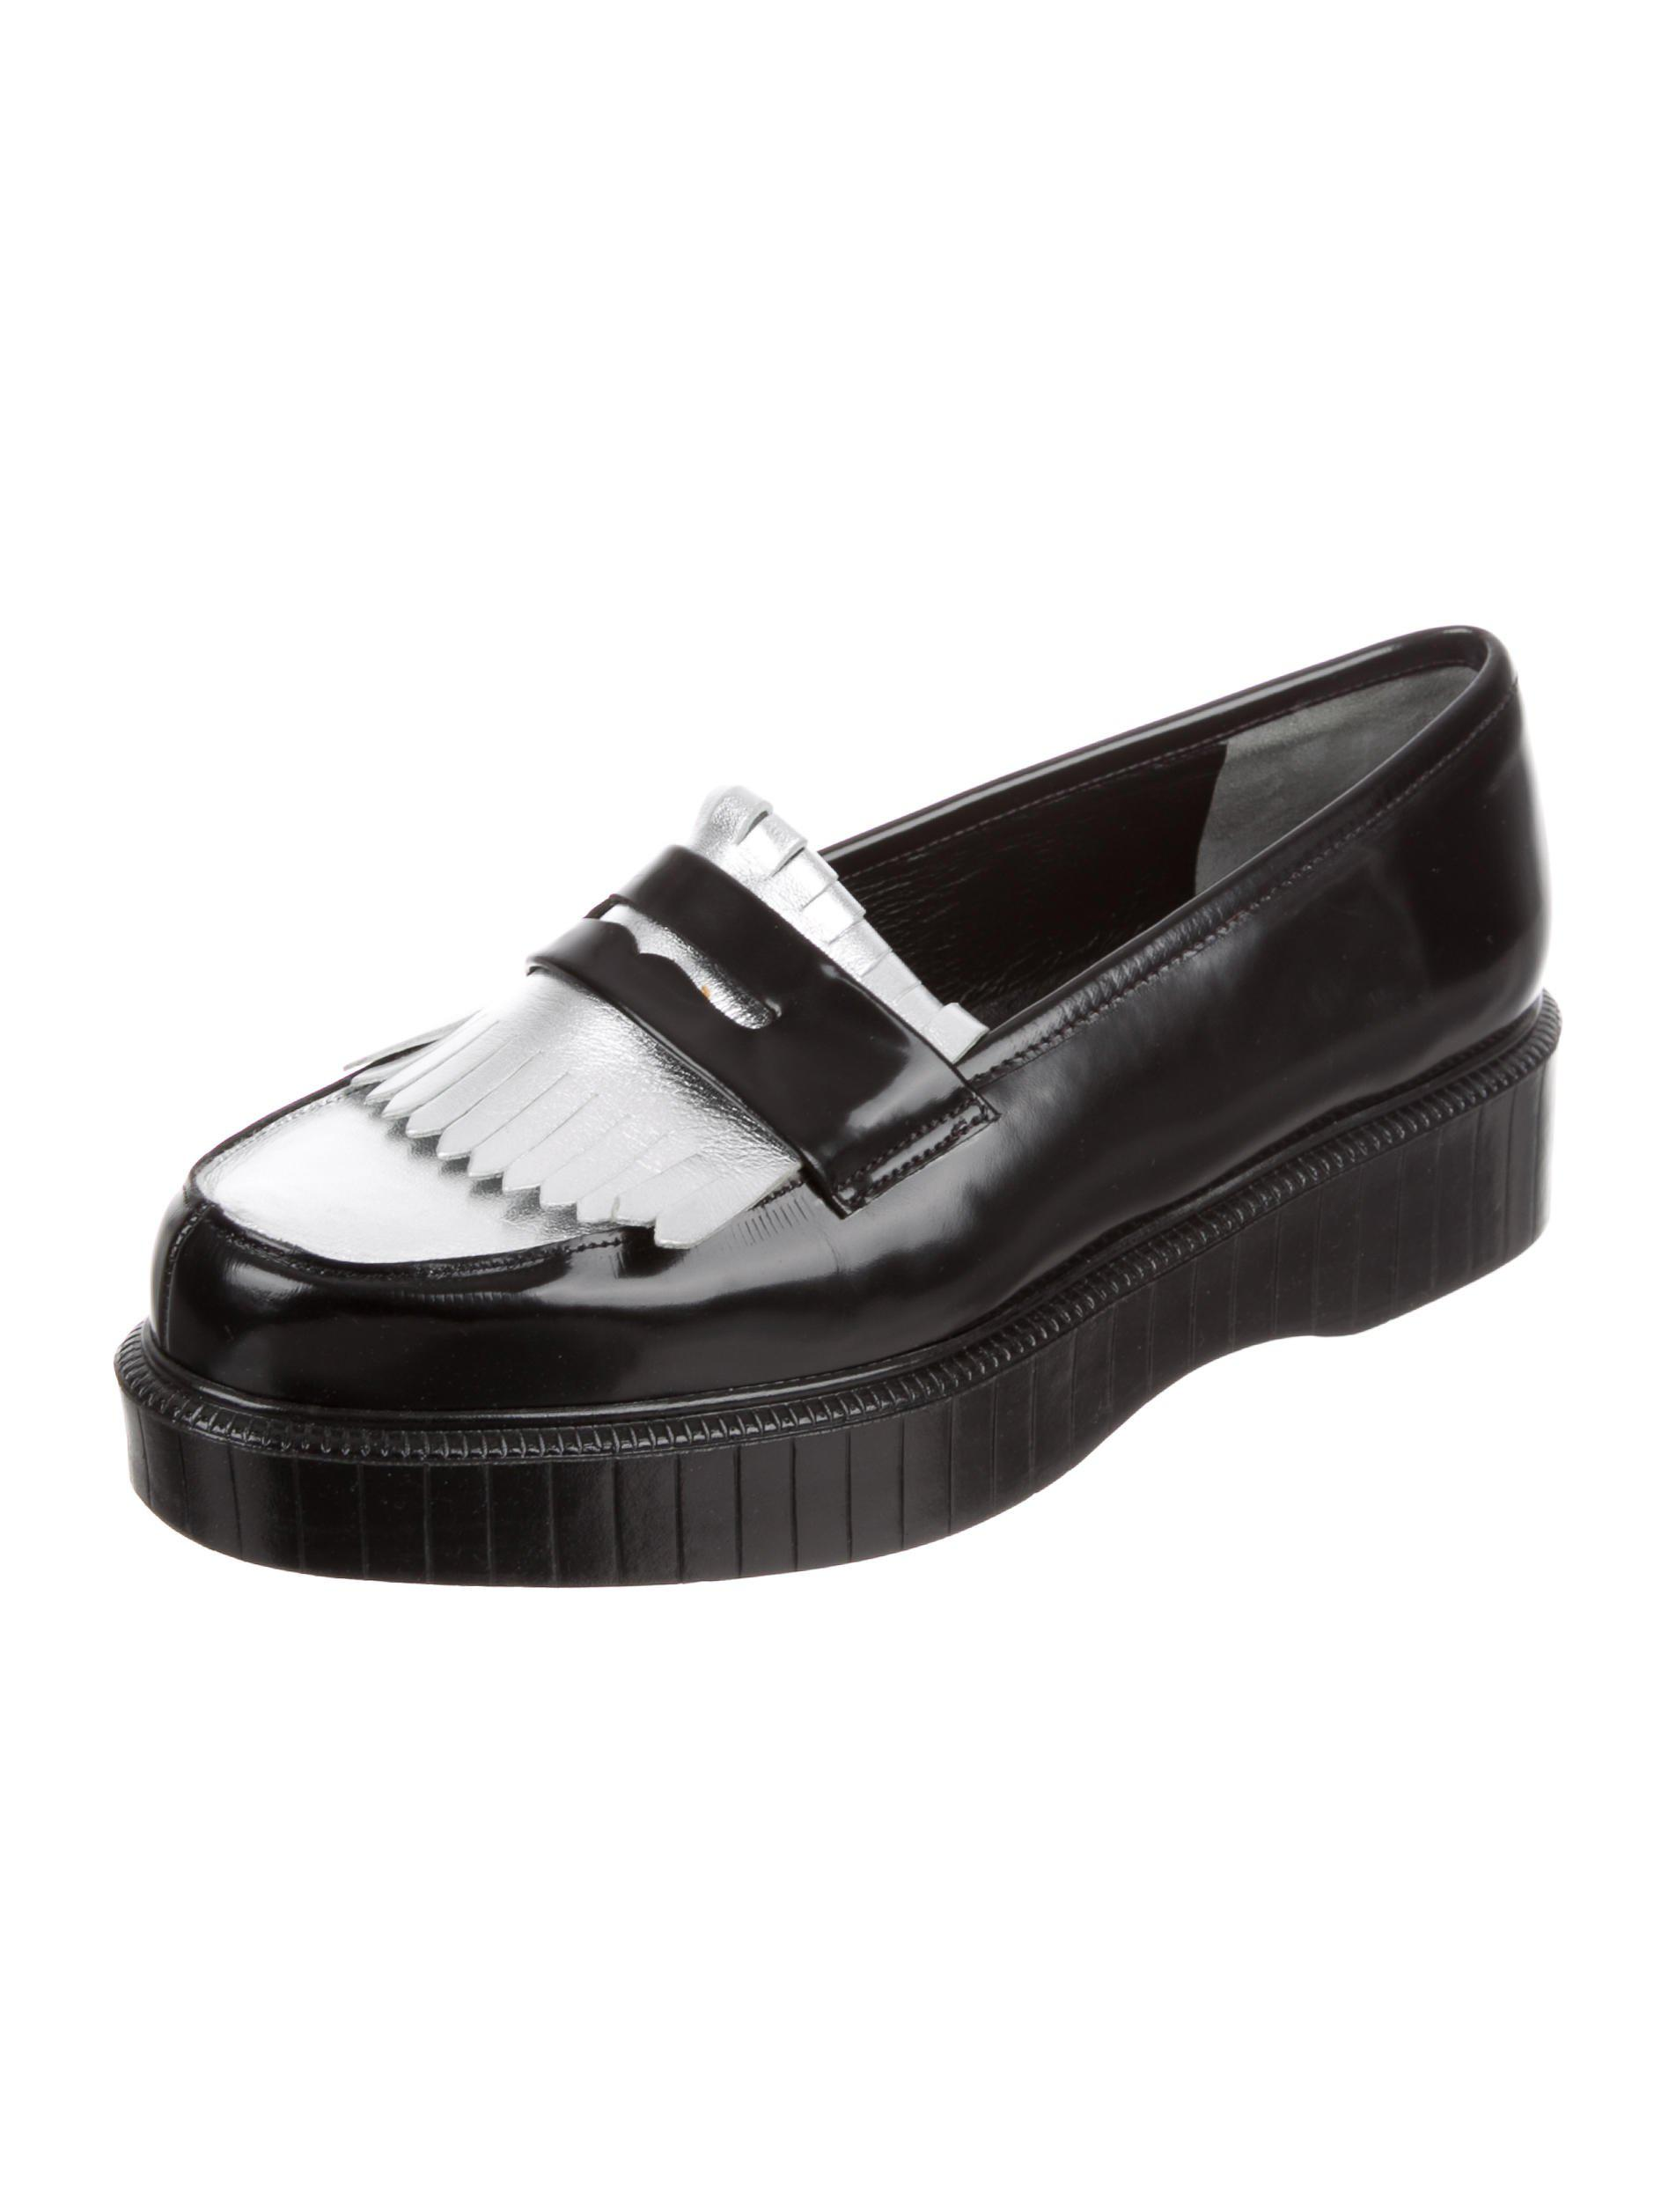 fast delivery sale online finishline online Robert Clergerie Clergerie Paris Kiltie Flatform Loafers clearance top quality cheap sale low price buy cheap discounts w4GQyh